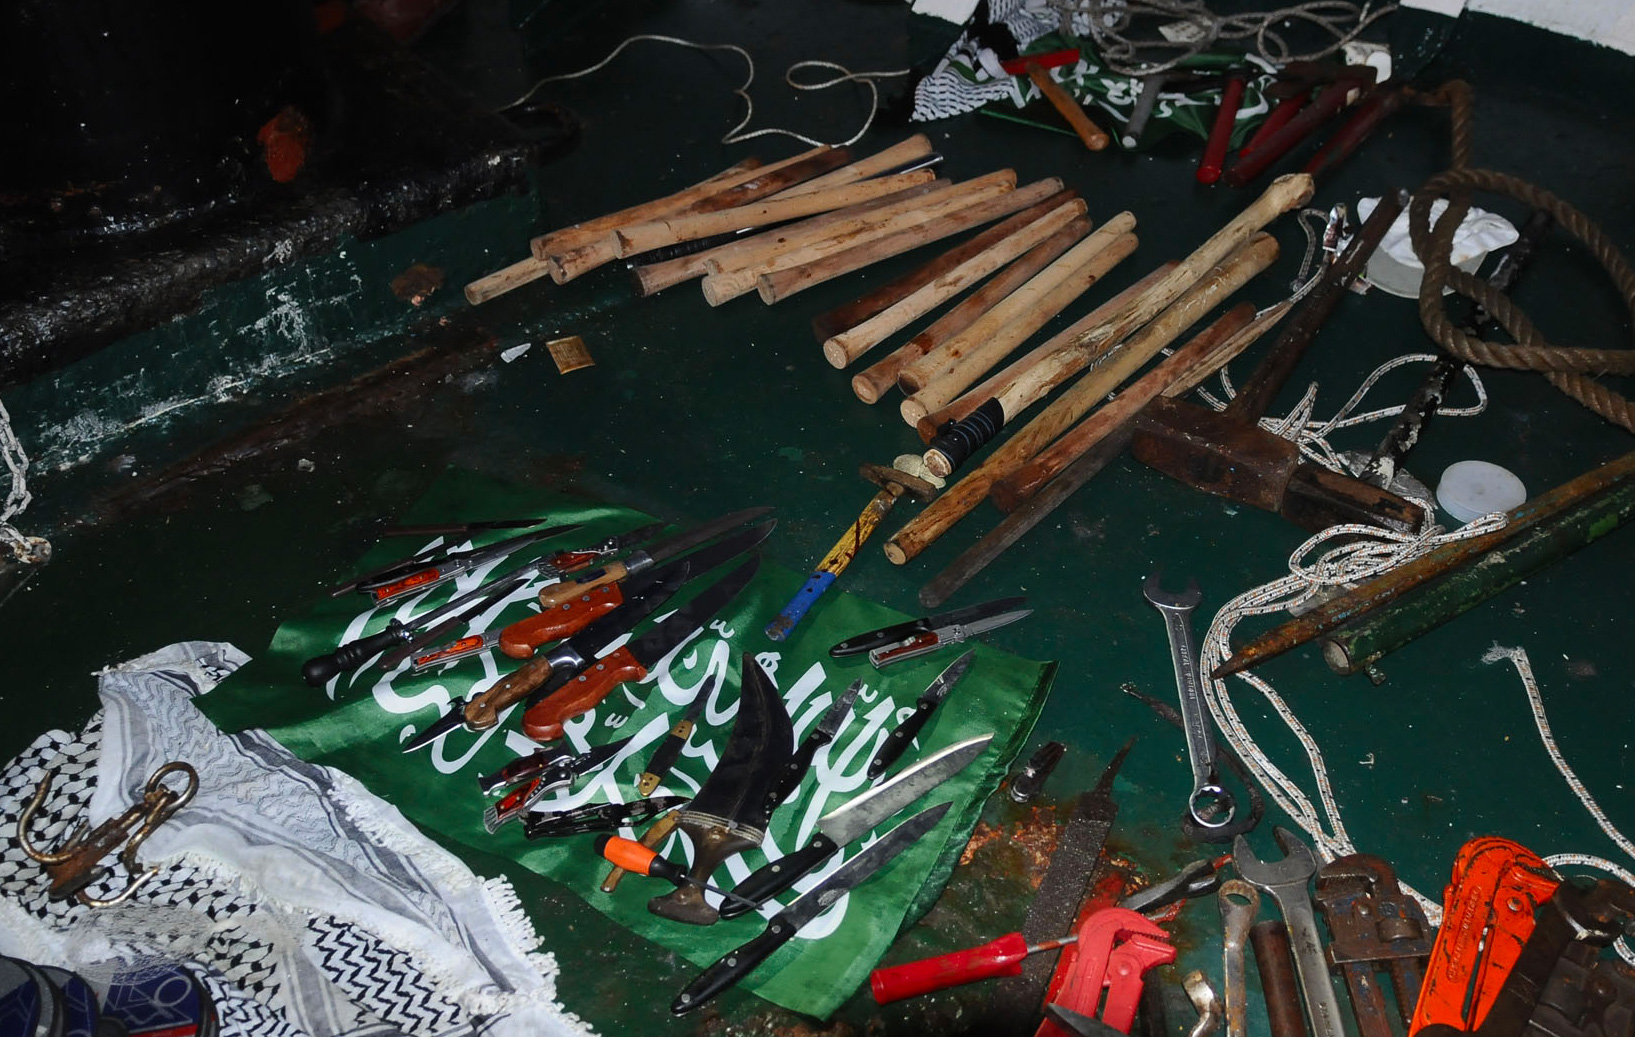 Lethal Weapons Cache aboard Mavi Mamara